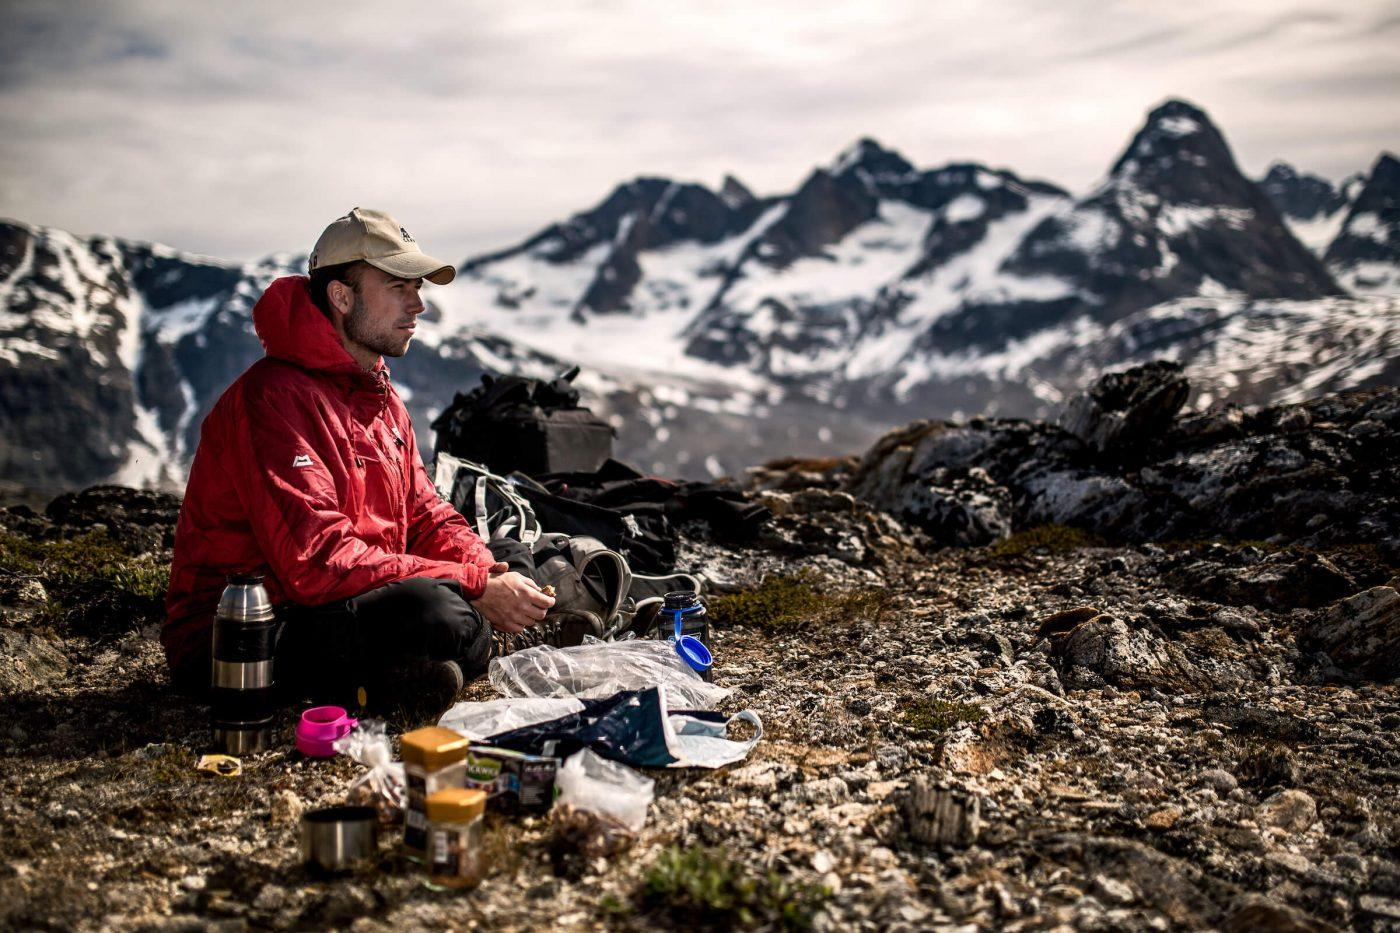 A Greenland Travel guide making coffee for his guests on a trek near Tasiilaq in East Greenland. By Mads Pihl